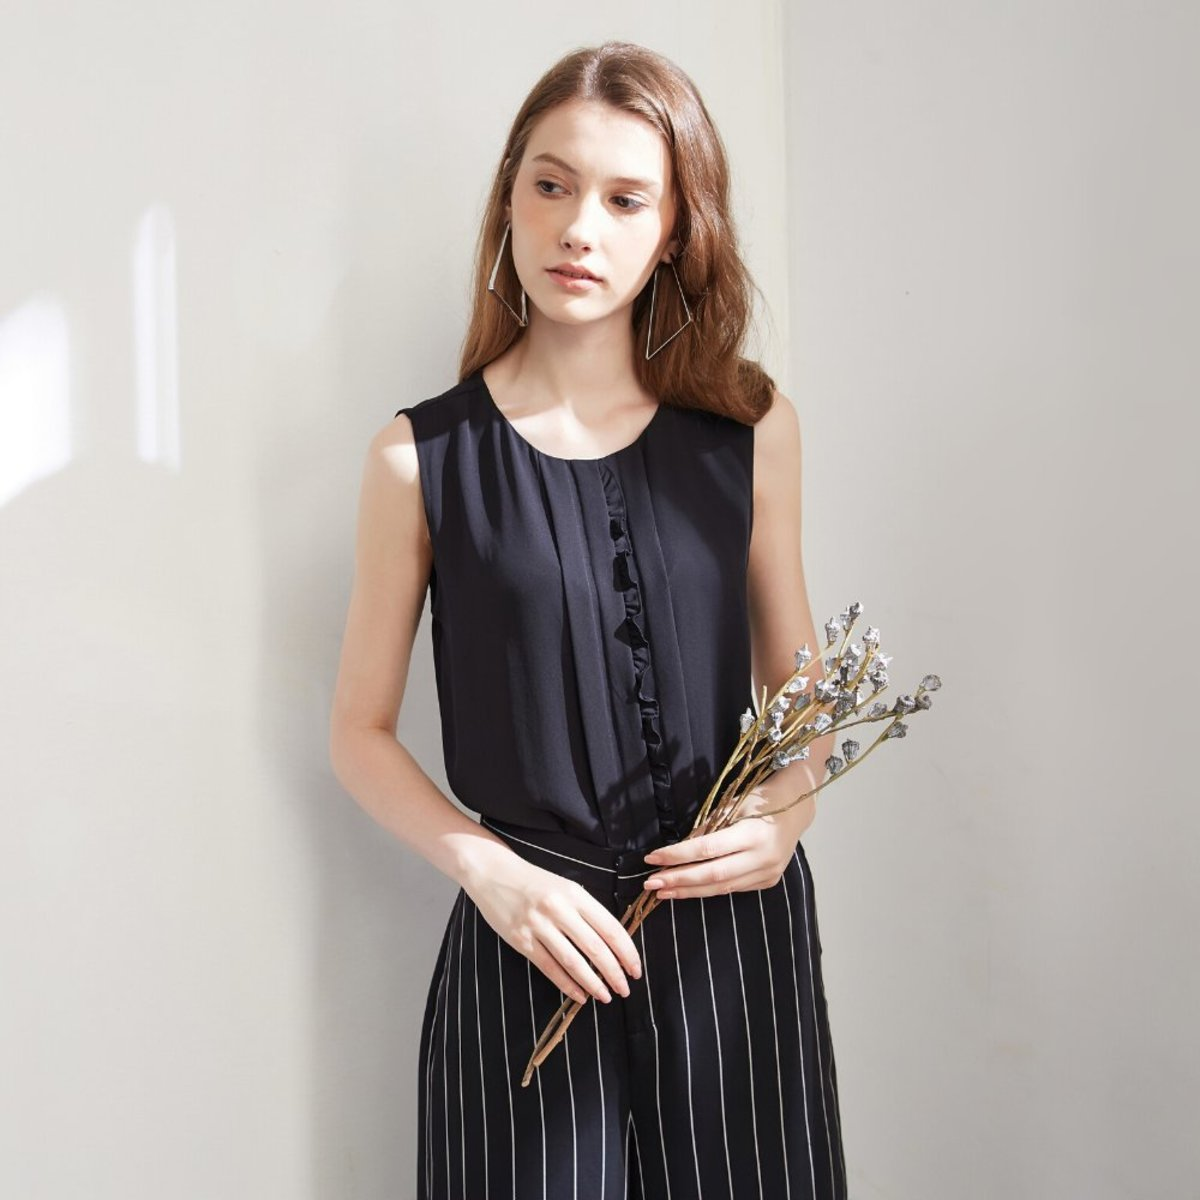 Women's Sleeveless Top with Ruffle Details (Black)